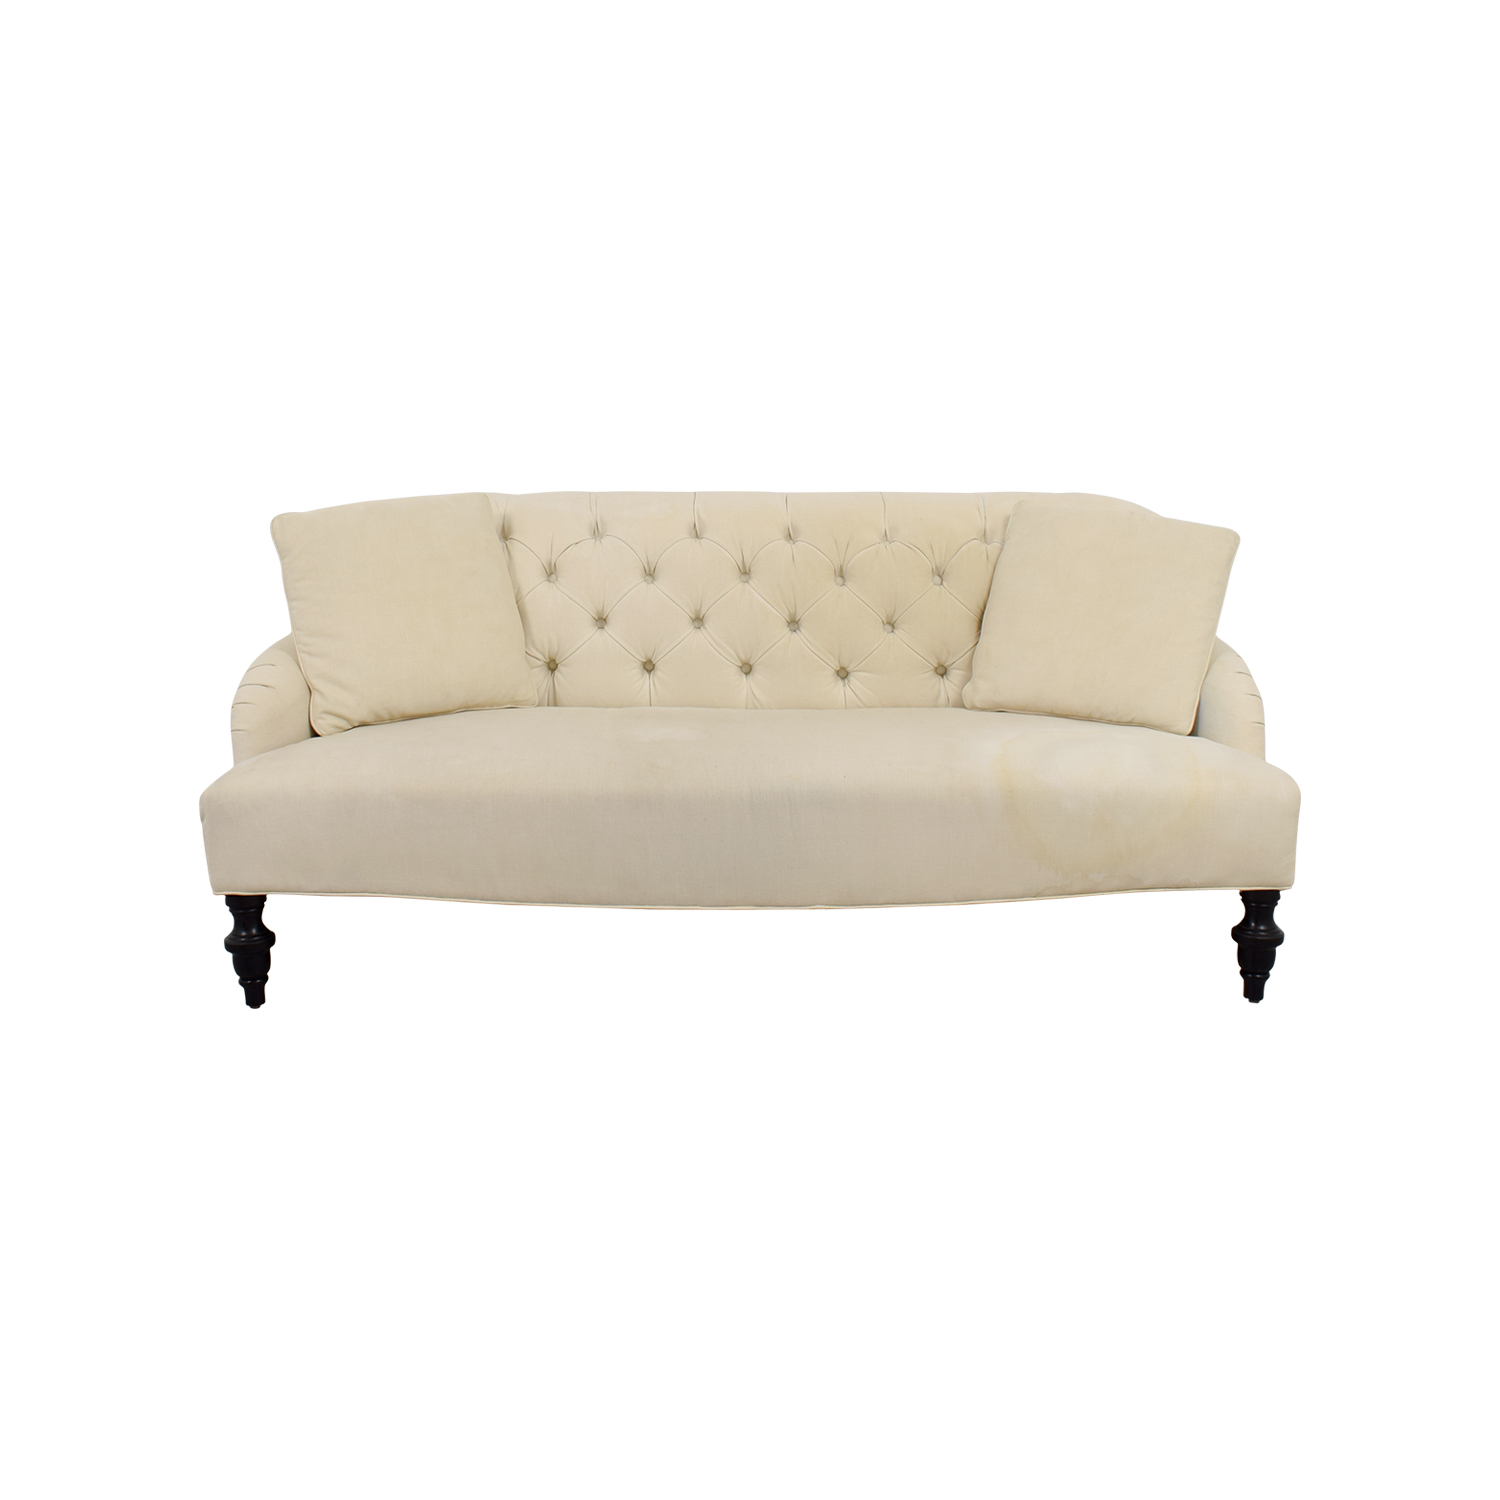 Pottery Barn Pottery Barn Clara Upholstered Apartment Sofa on sale